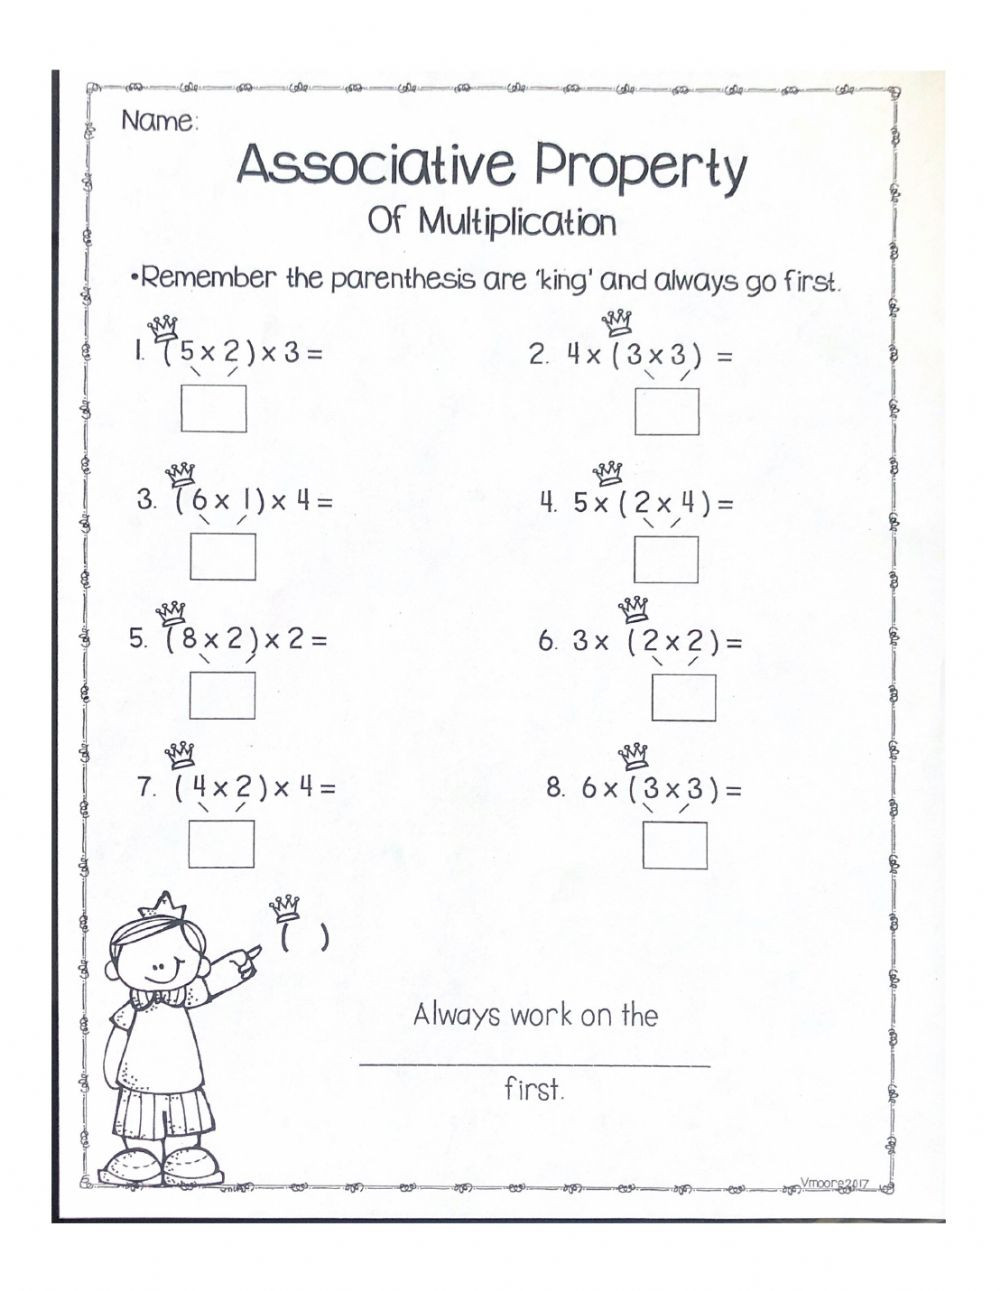 Associative Property Of Multiplication Worksheet associative Property Worksheet Worksheet